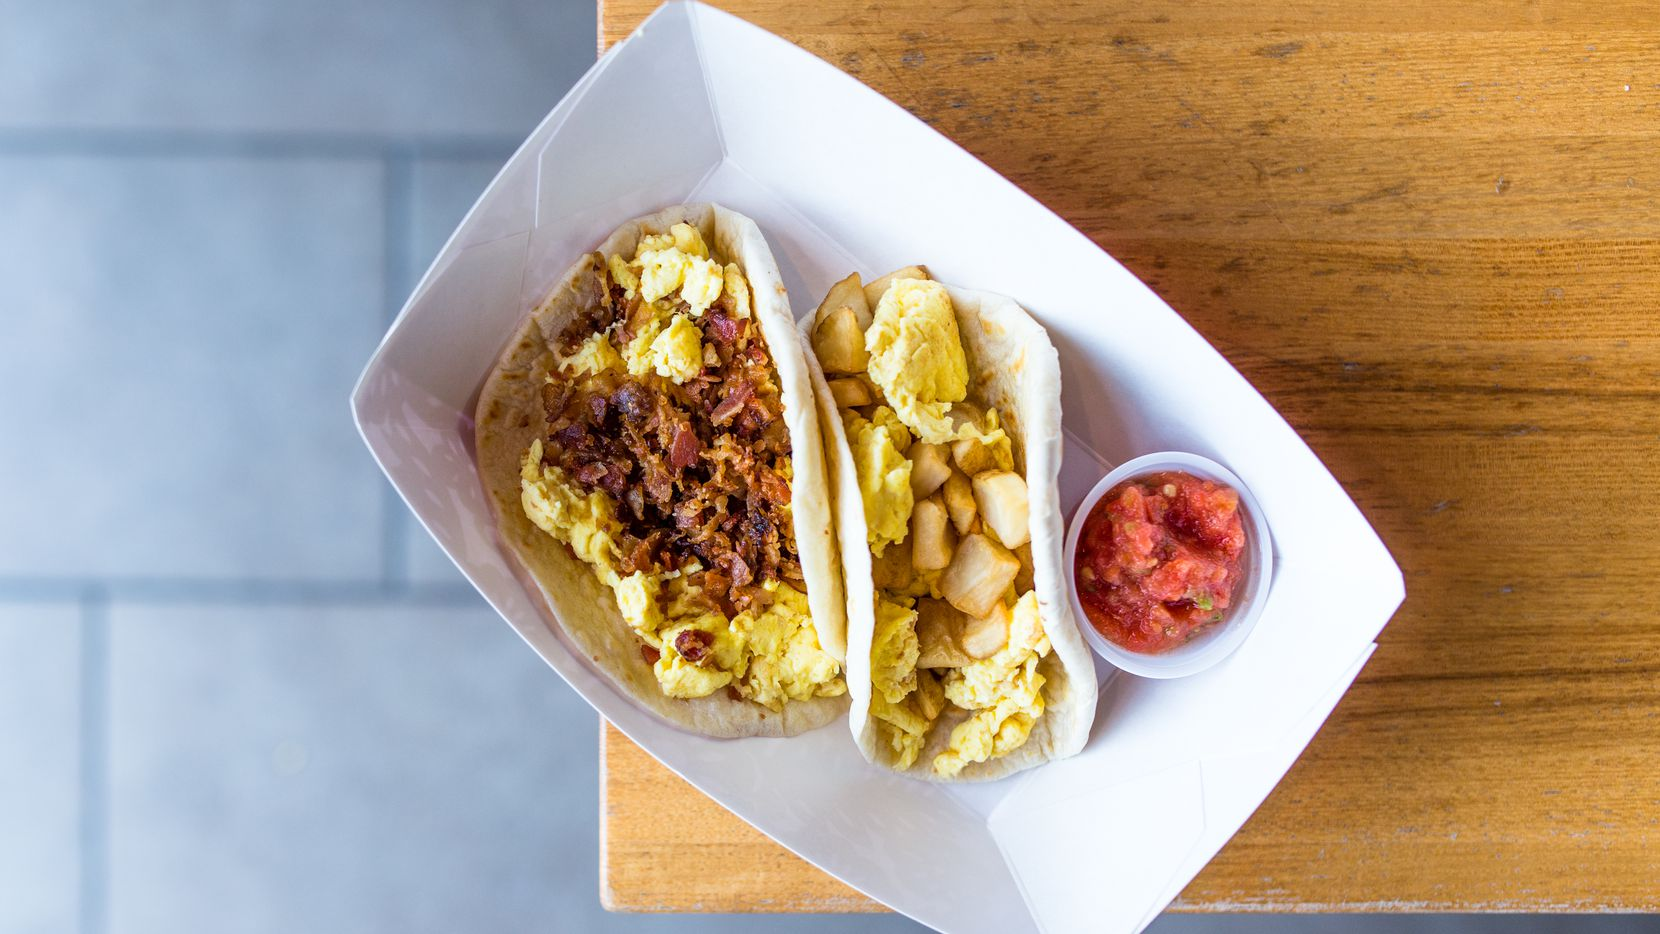 Taco Cabana and the Favor delivery app will deliver free breakfast tacos in Dallas on Feb. 15.